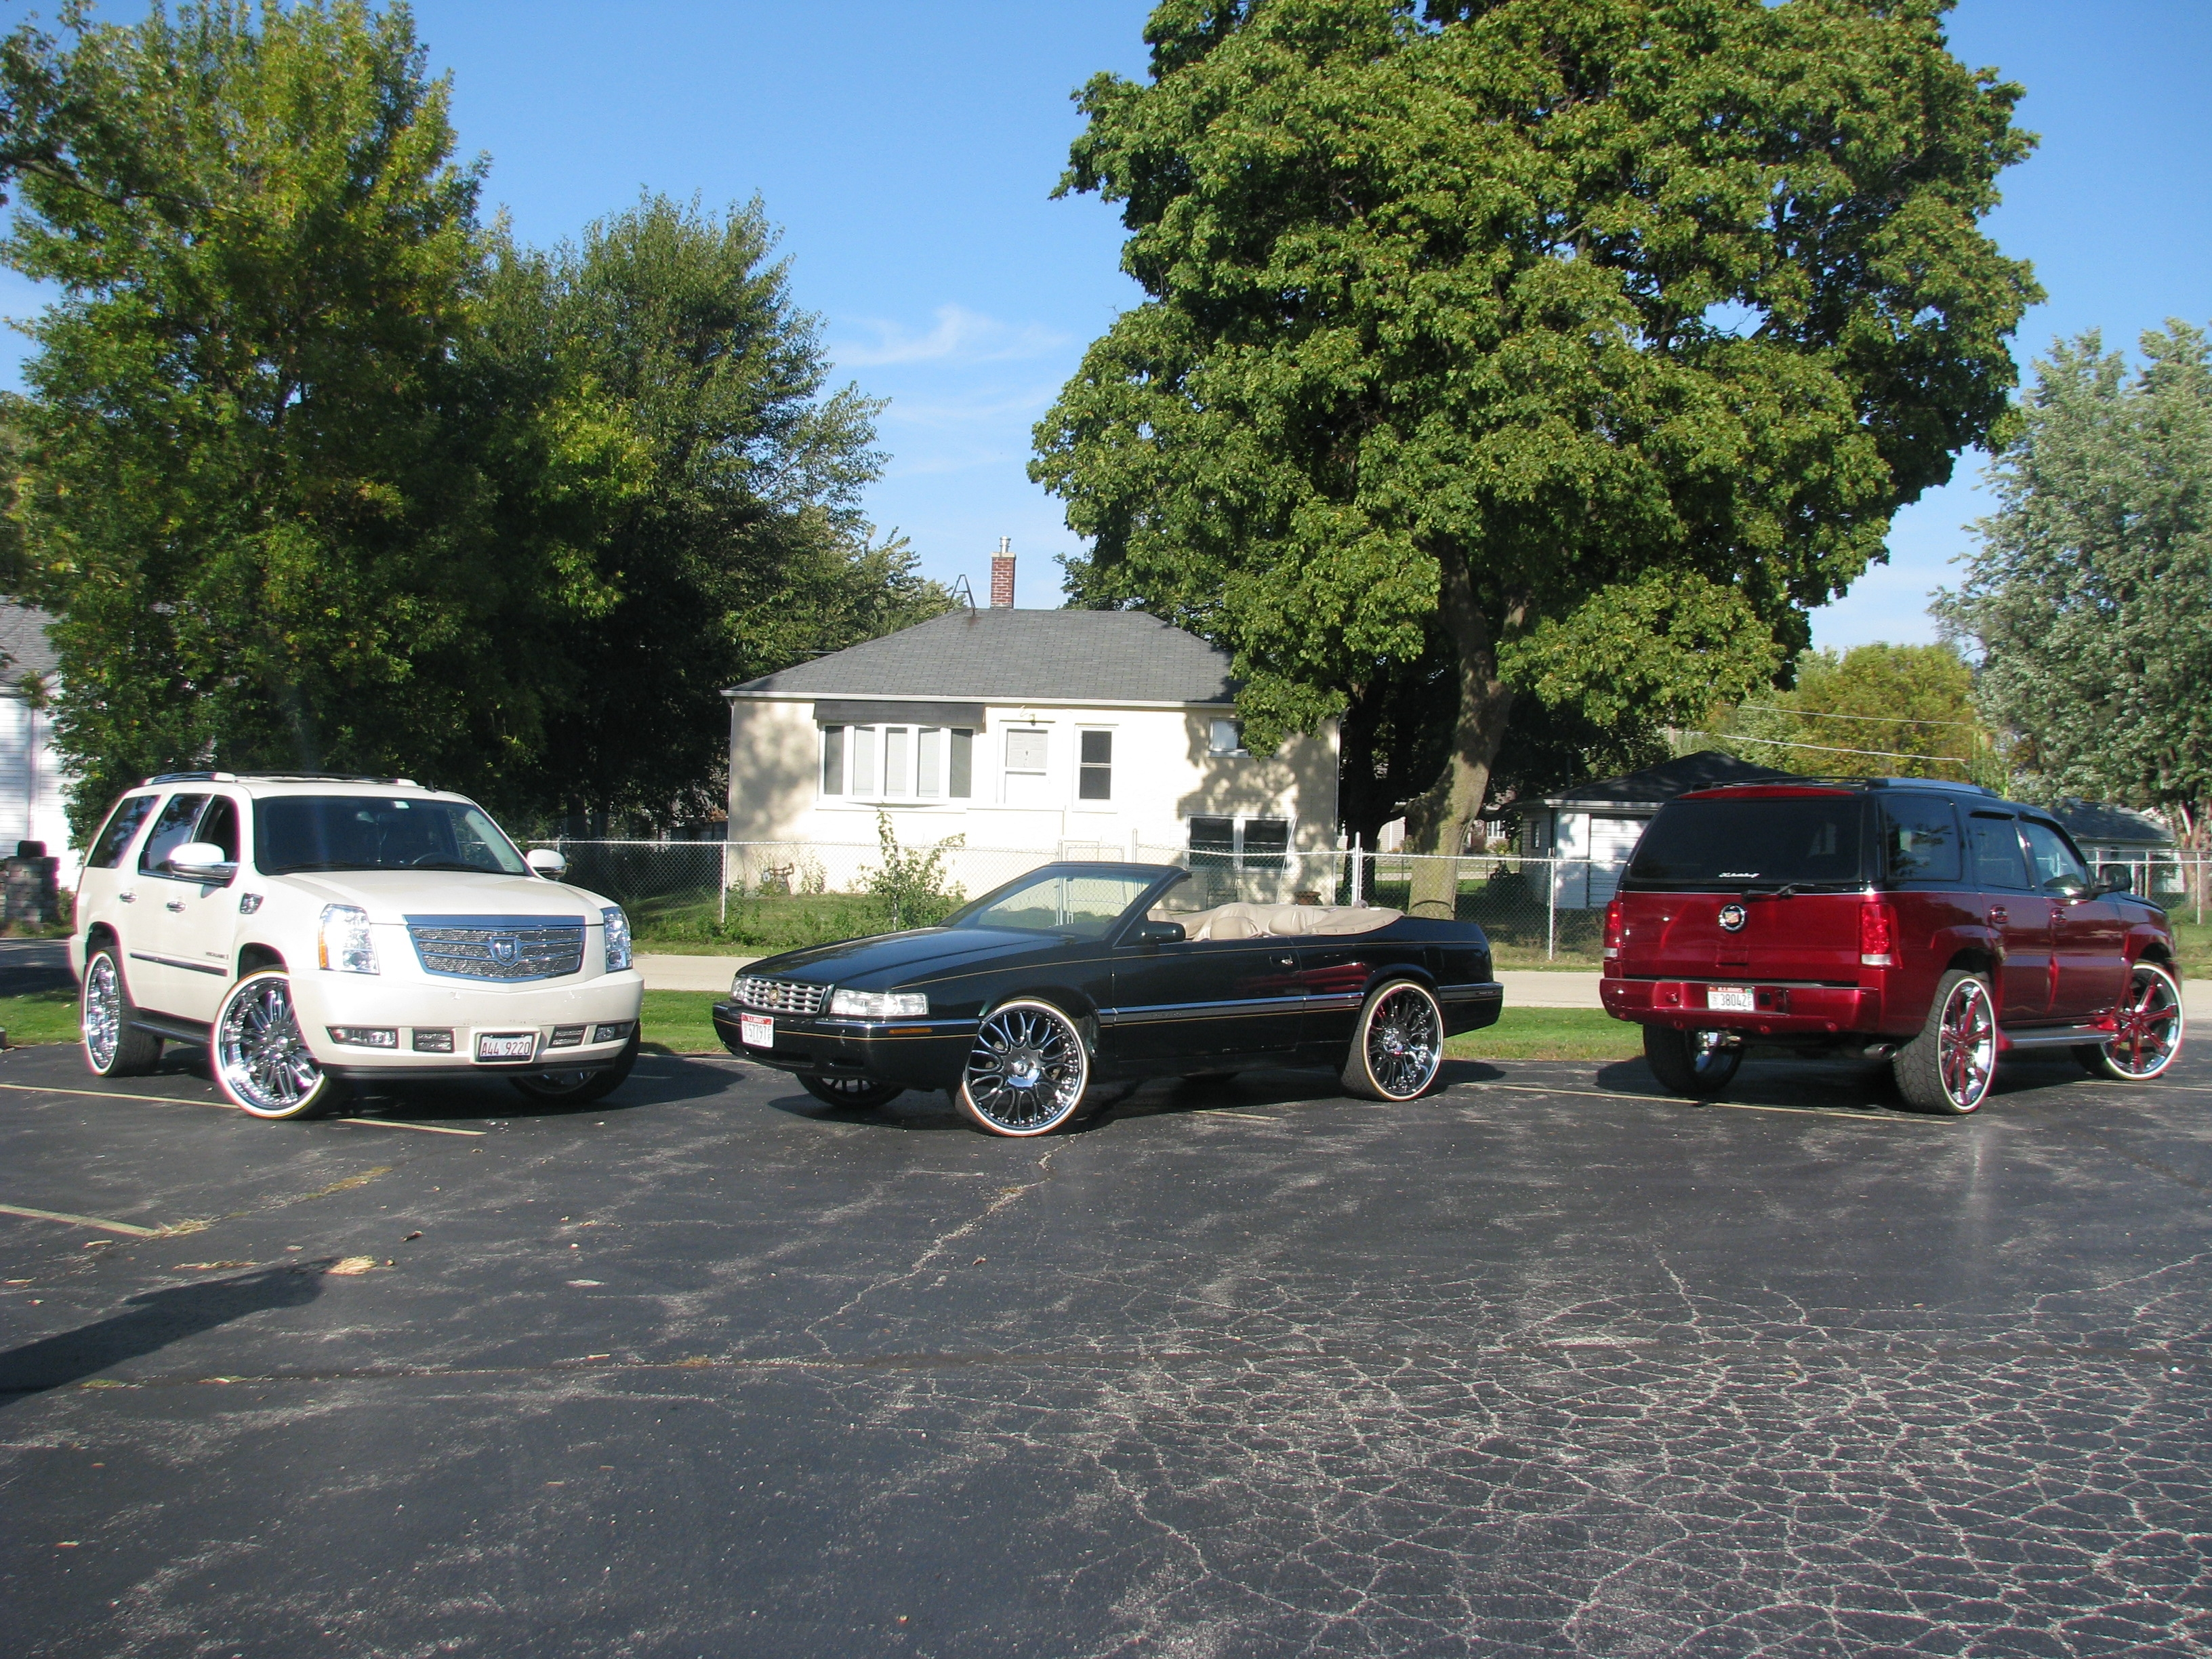 CHITOWNSILLEST 1985 Chevrolet Caprice 11517706